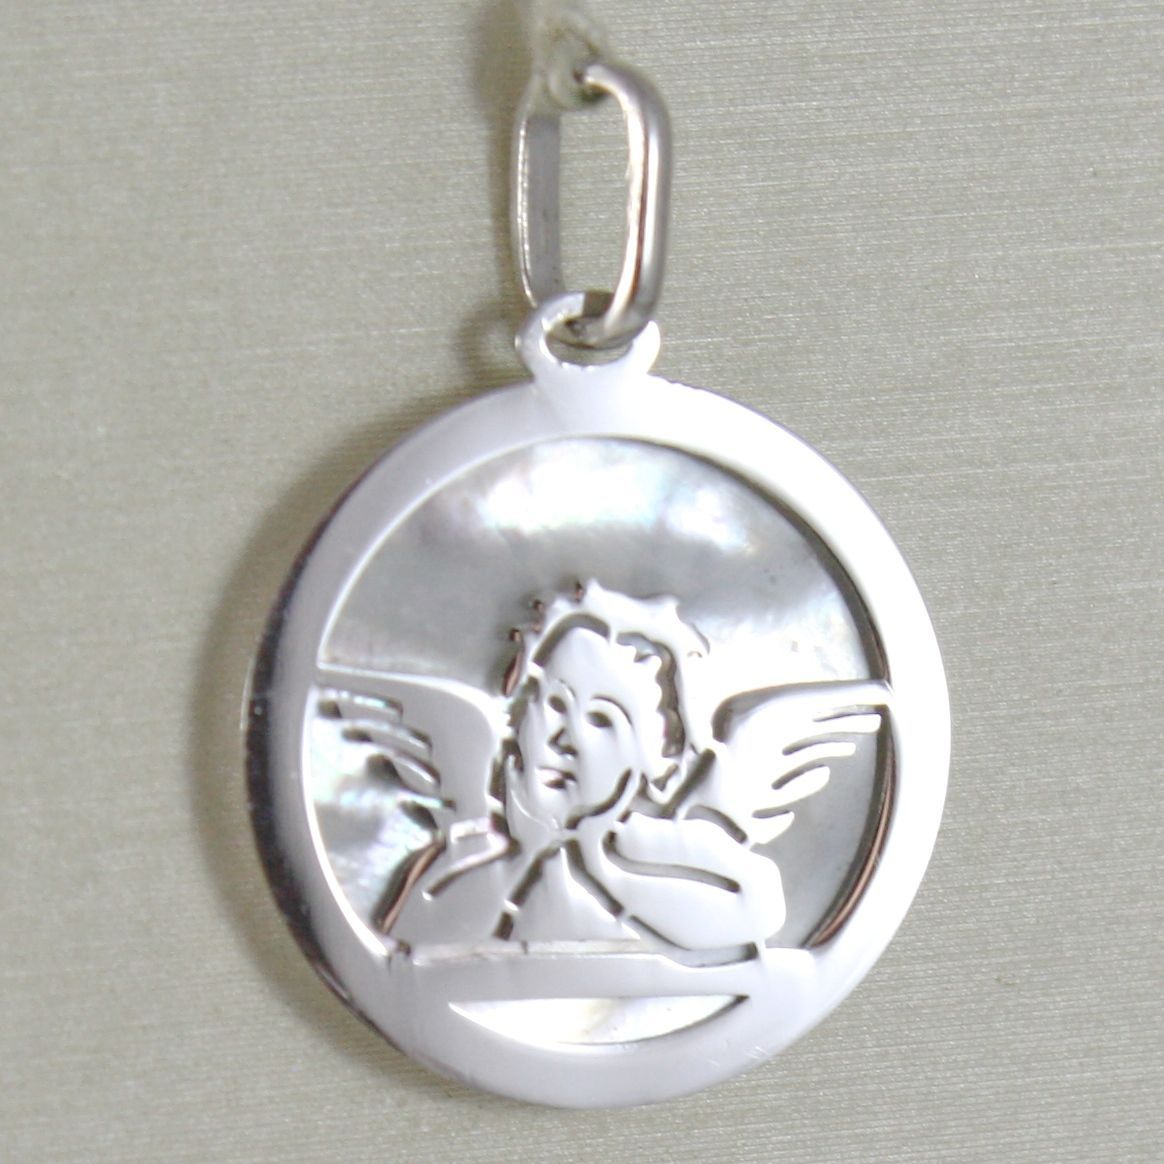 PENDANT MEDAL WITH ANGEL GUARDIAN WHITE GOLD 750 18K AND NACRE